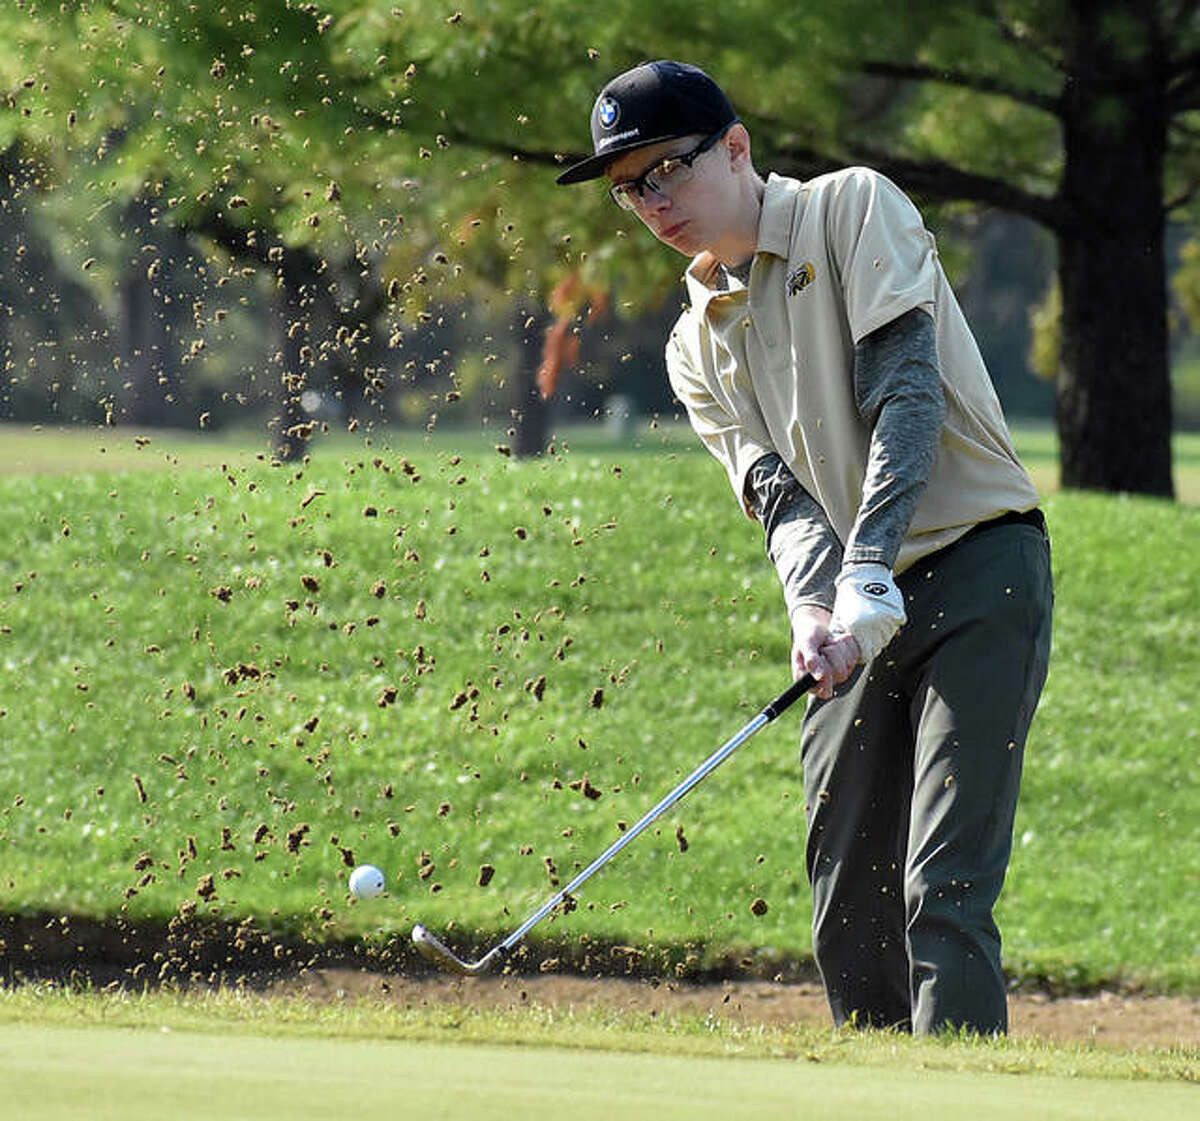 Metro-East Lutheran's Charlie Fedder hits his shot out of the bunker and onto the green on No. 13 at Timber Lakes Golf Course in Staunton on Tuesday during the Class 1A Mount Olive Regional.